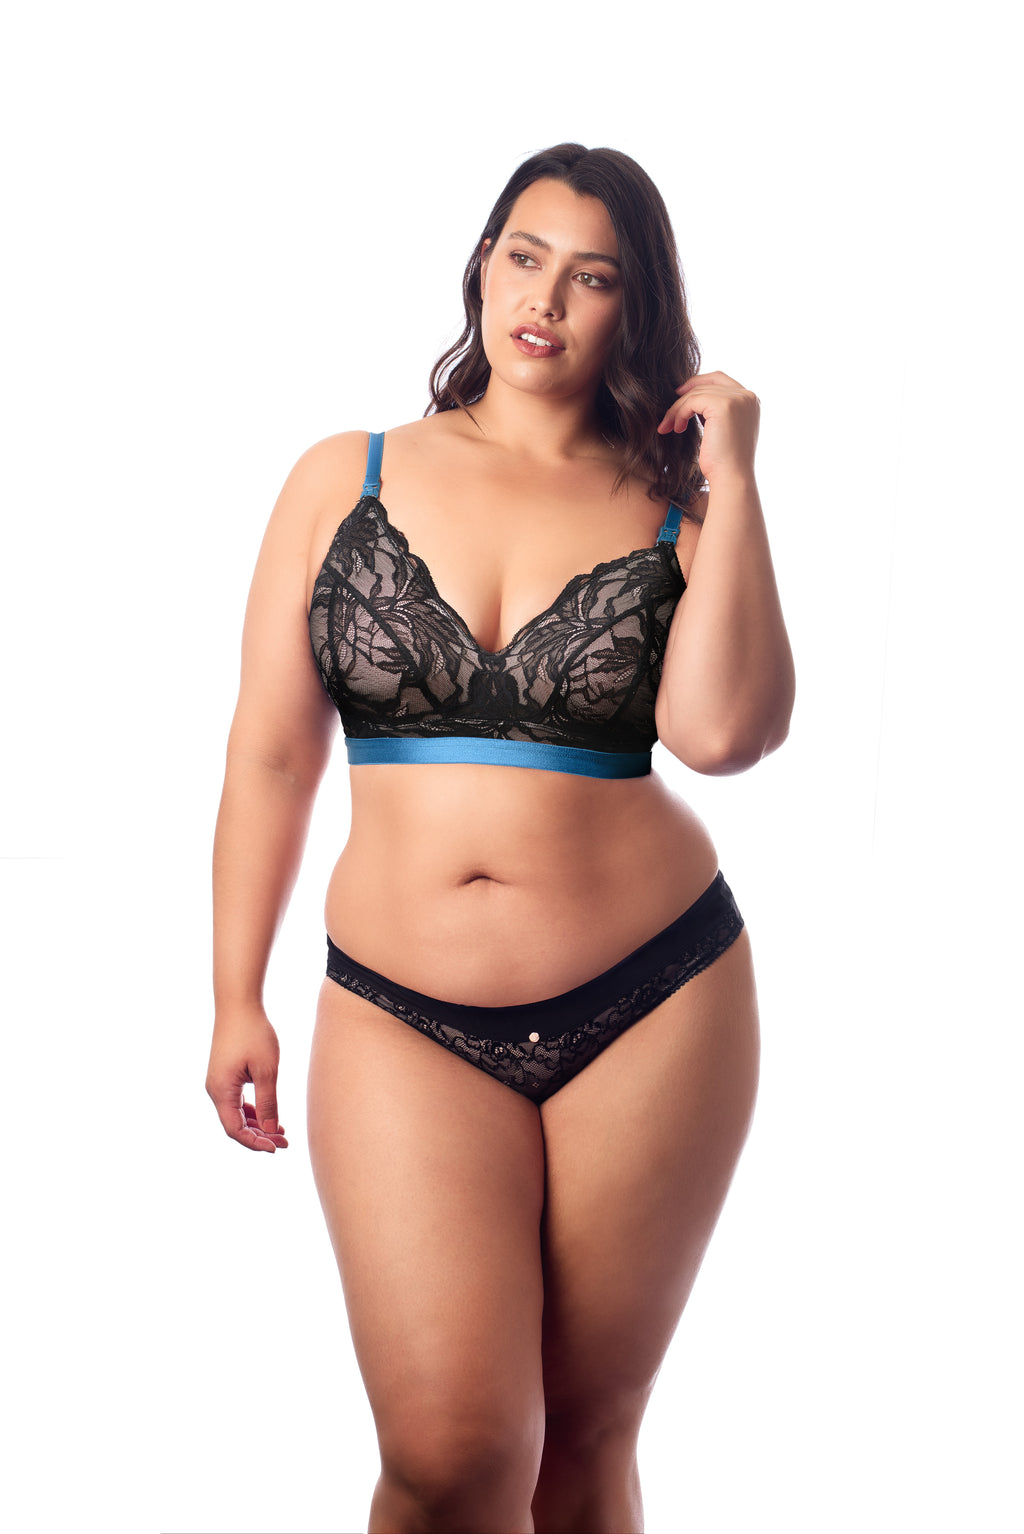 Allure Nursing bralette from Hotmilk with Temptation bikini brief